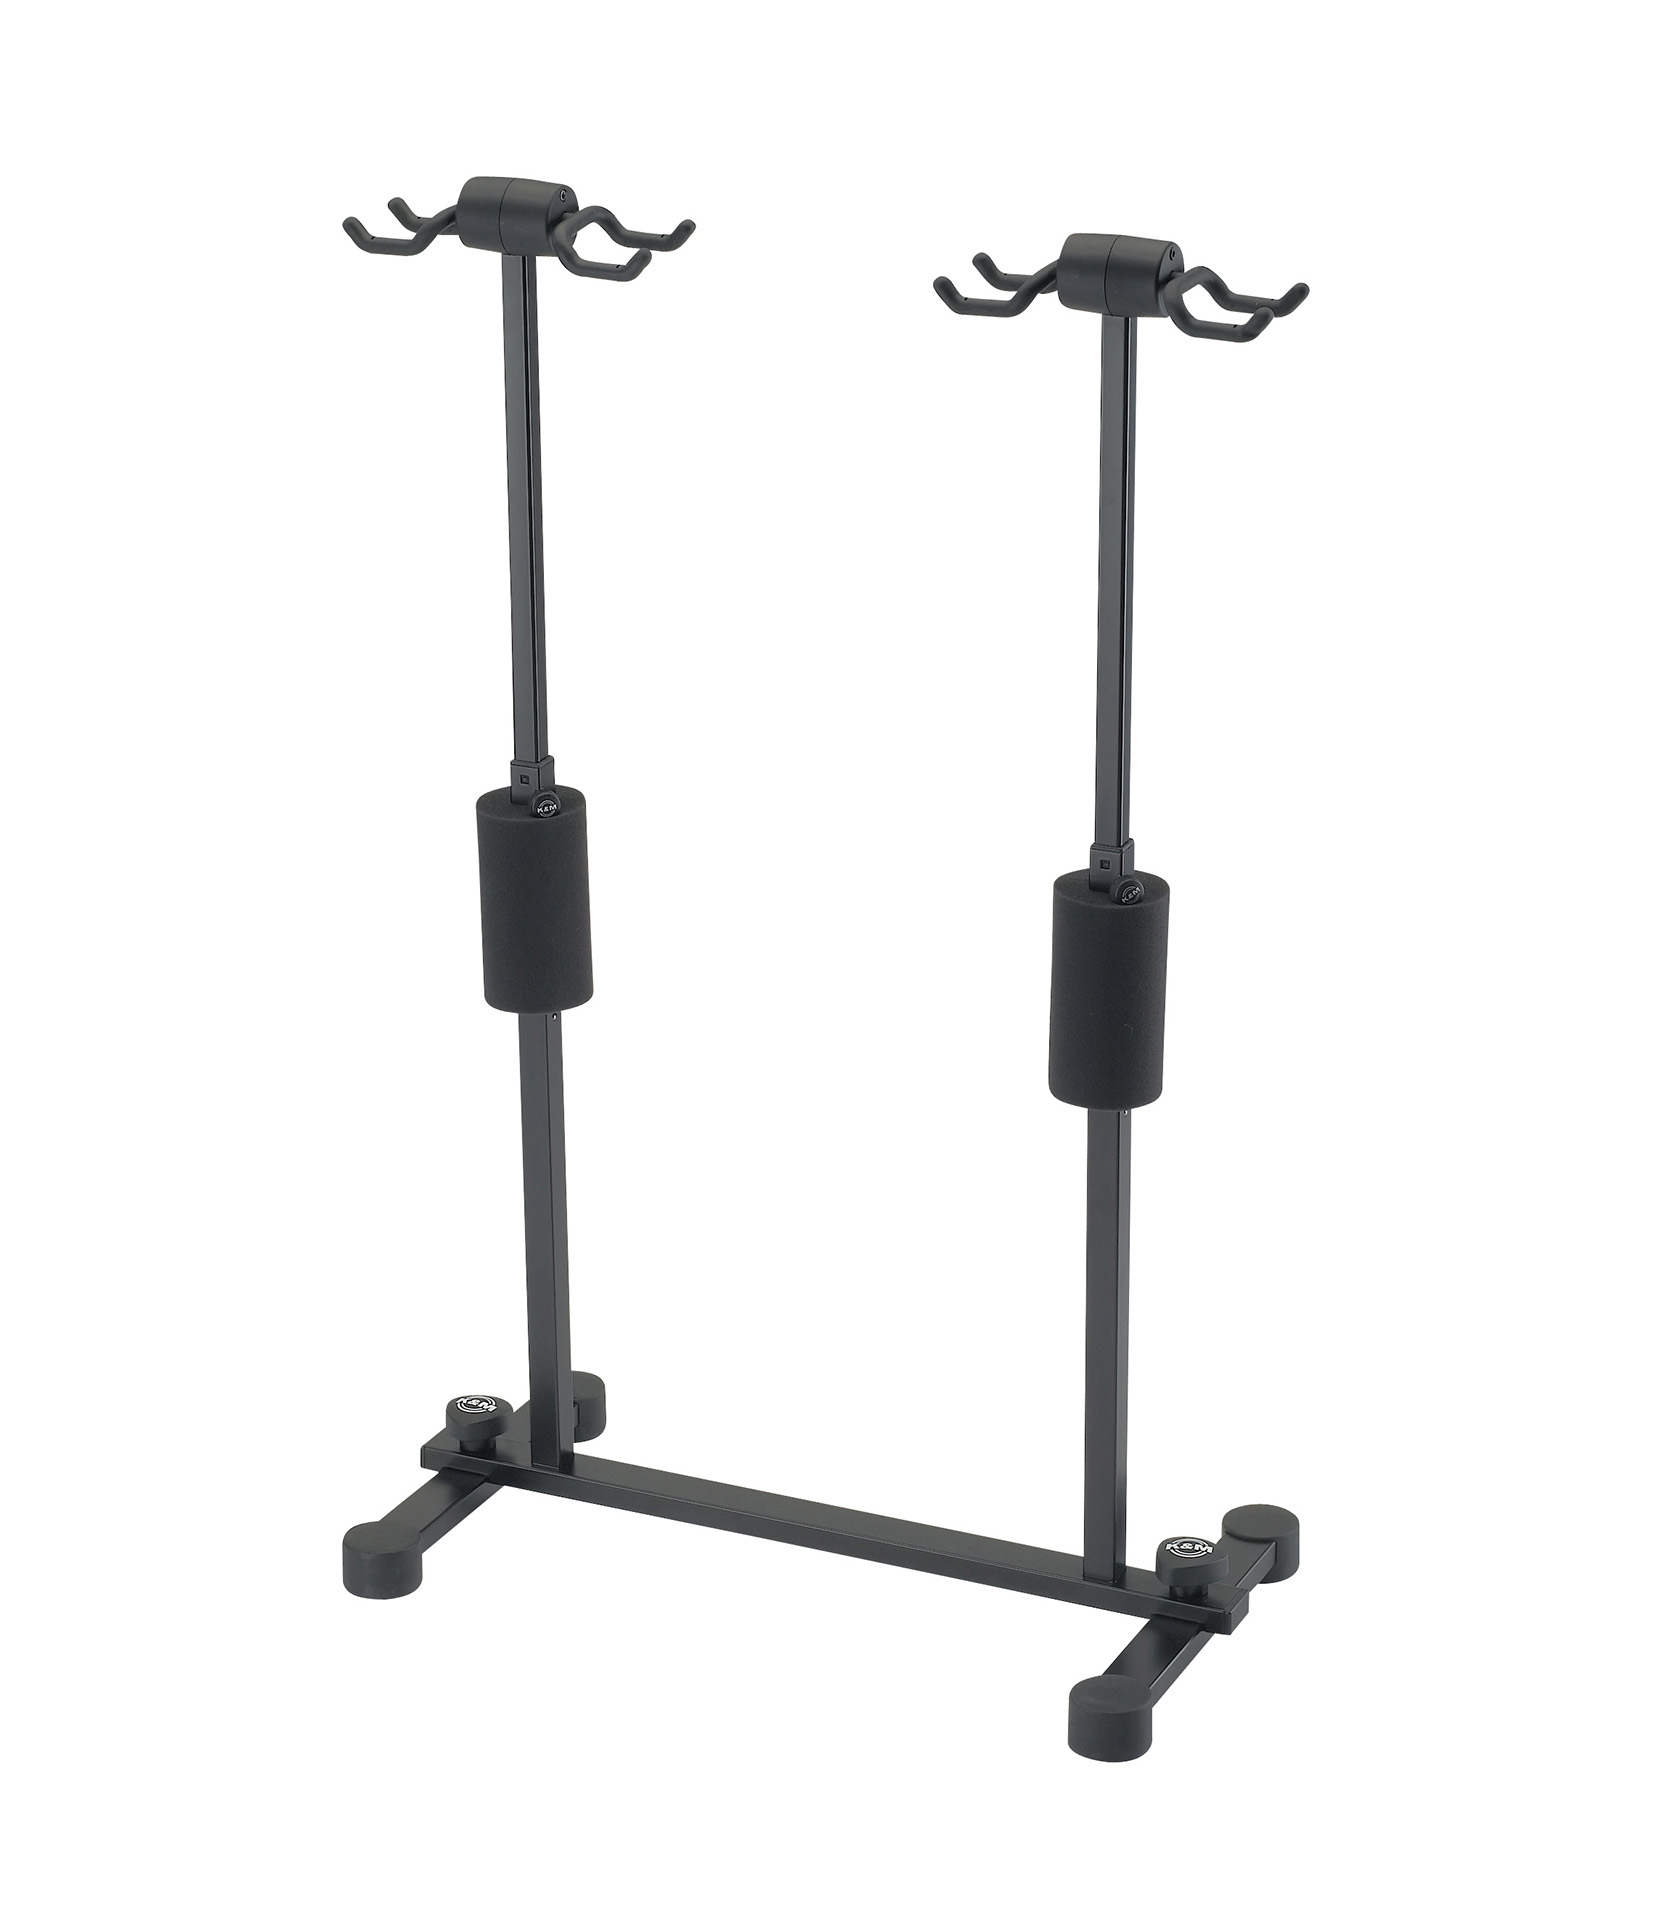 K&M - 17604 000 55 Four Guitar Stand Roadie Black